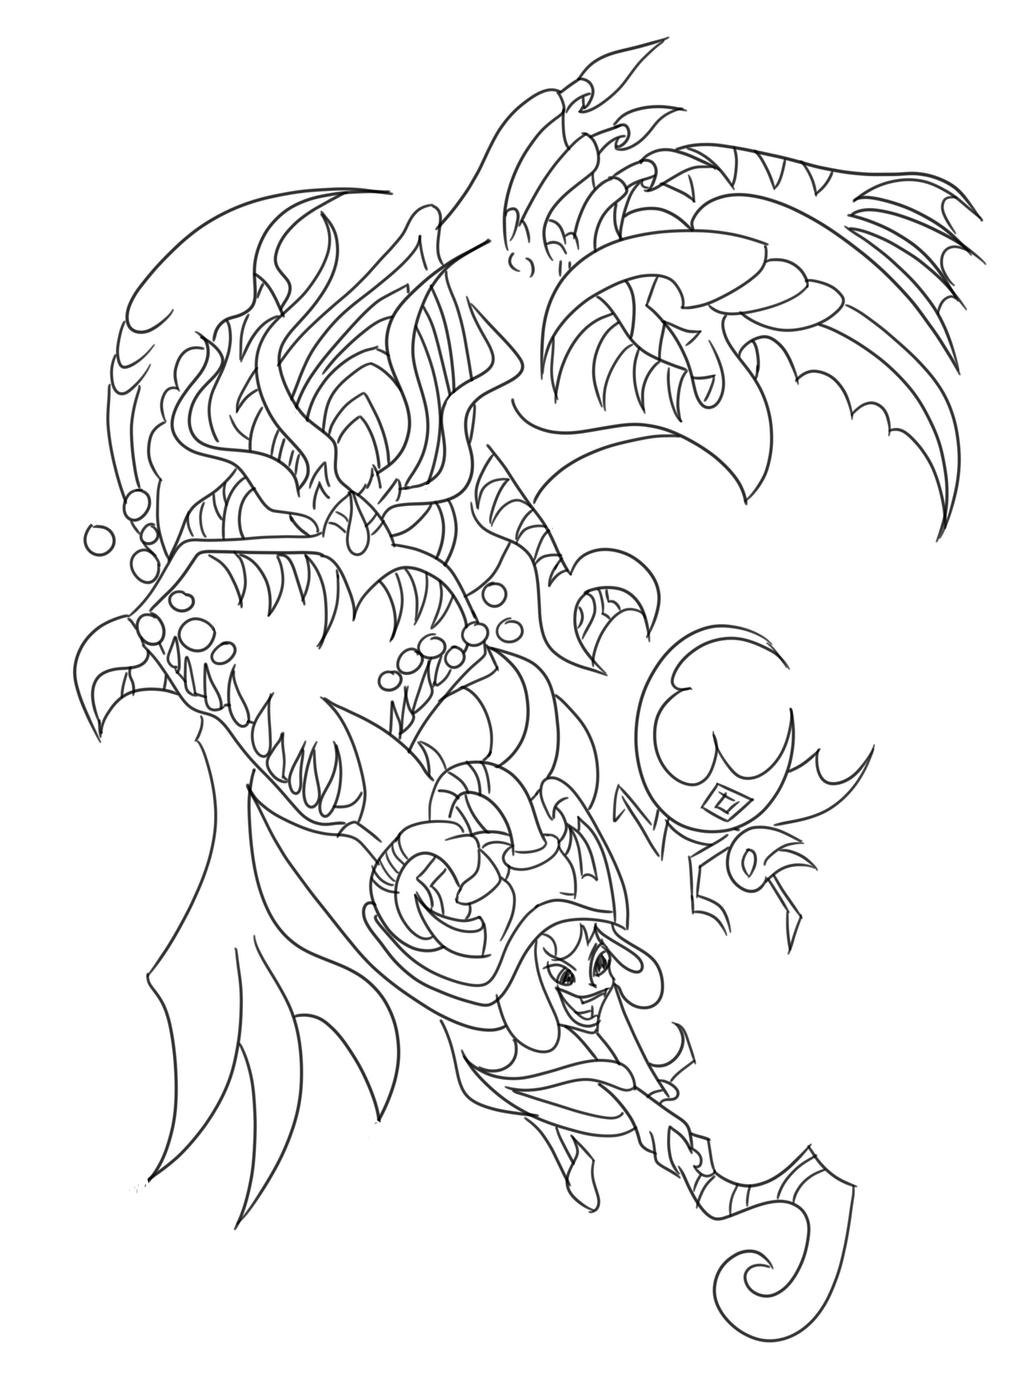 chogath and lulu coloring page by melusine designs